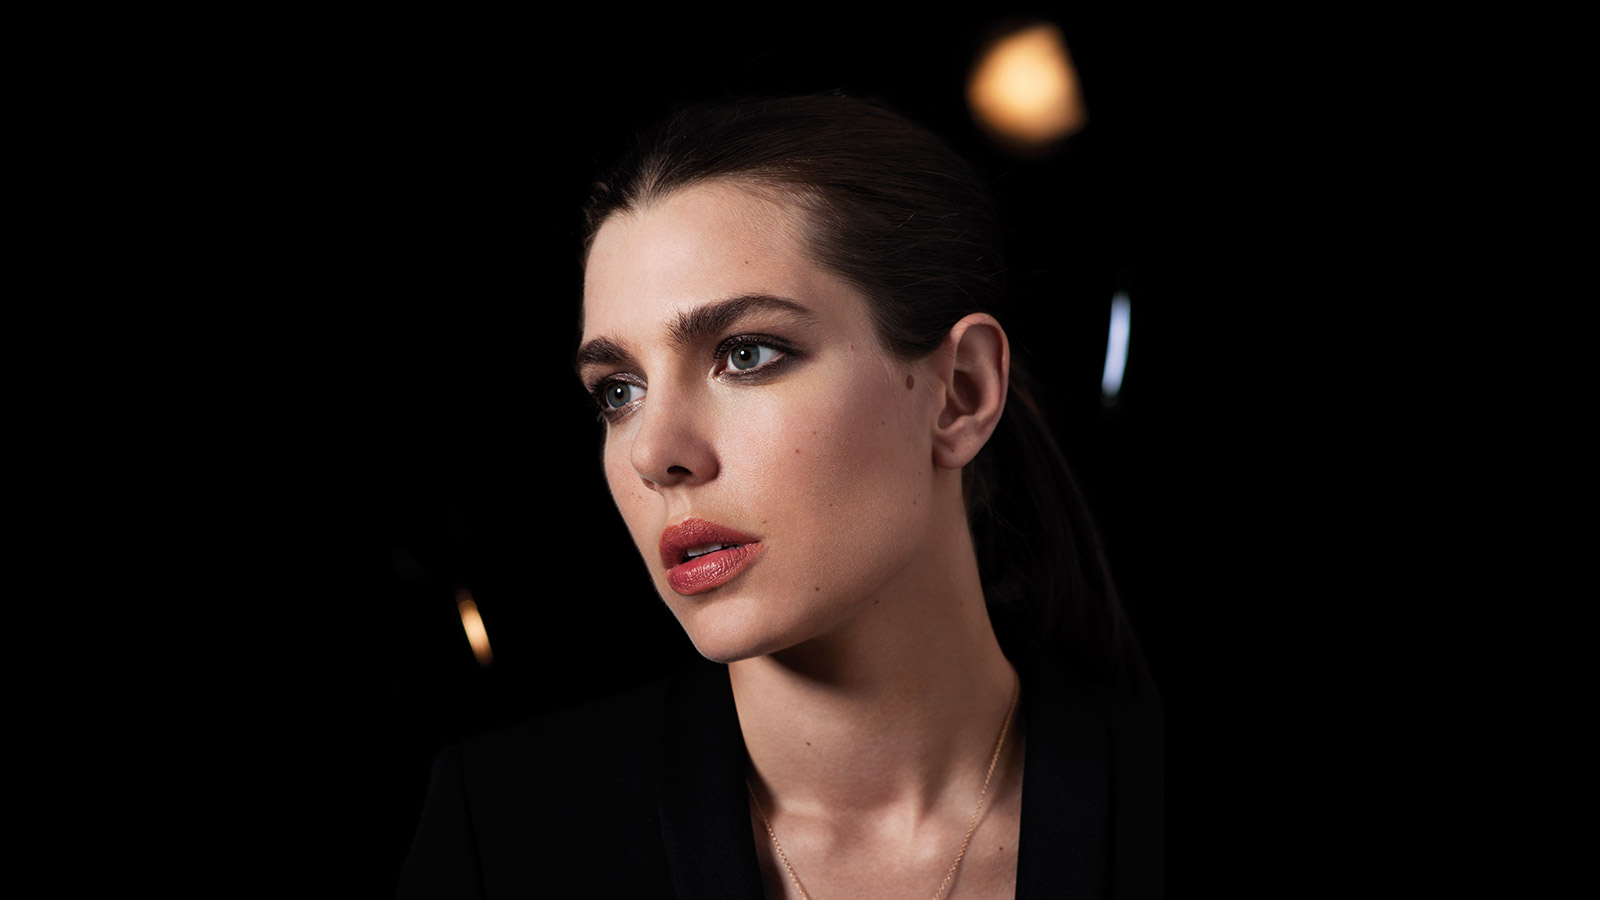 Charlotte-Casiraghi-02-@-Charlotte-Casiraghi-pour-MONTBLANC-rallonge